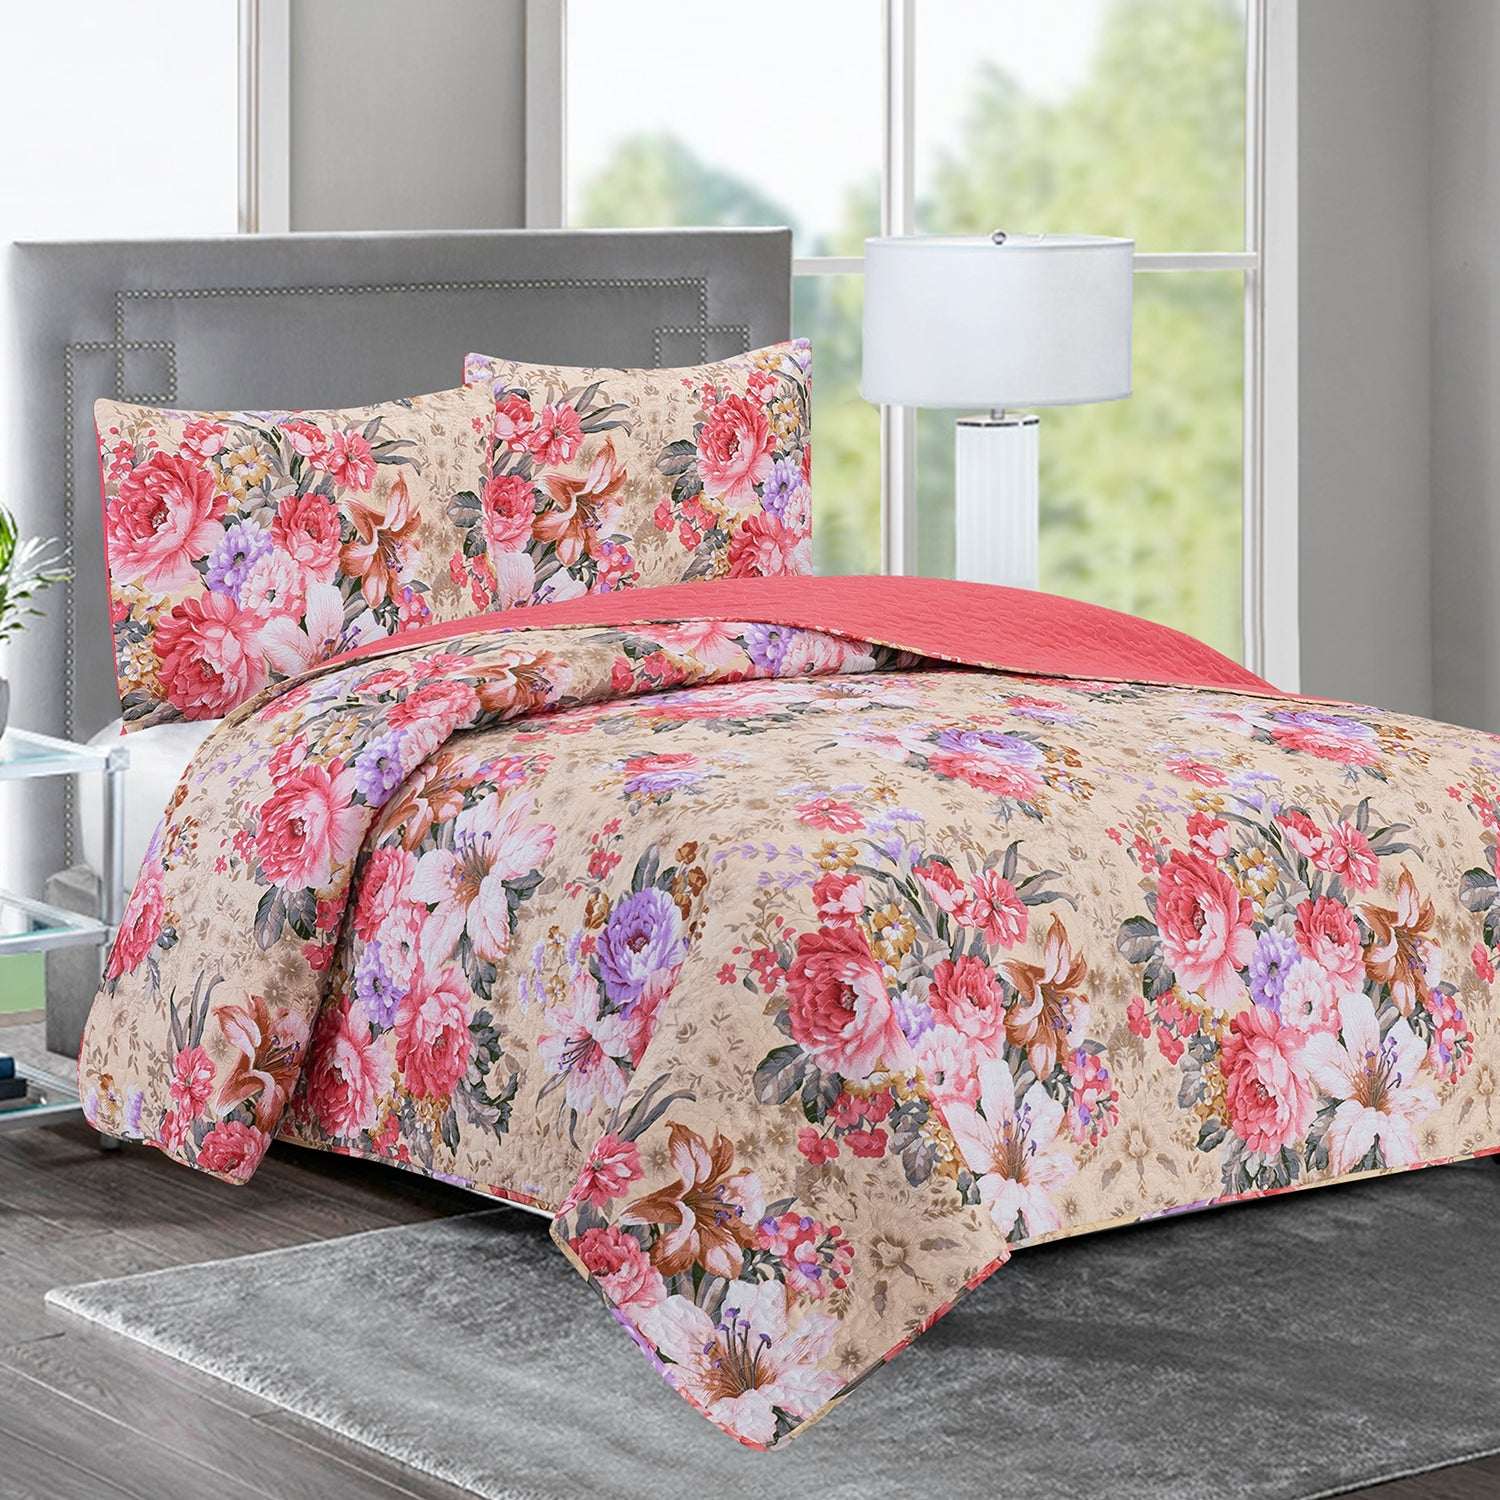 Elisa - 3 Piece Reversible Quilt Set - Rose Garden - Glory Home Design